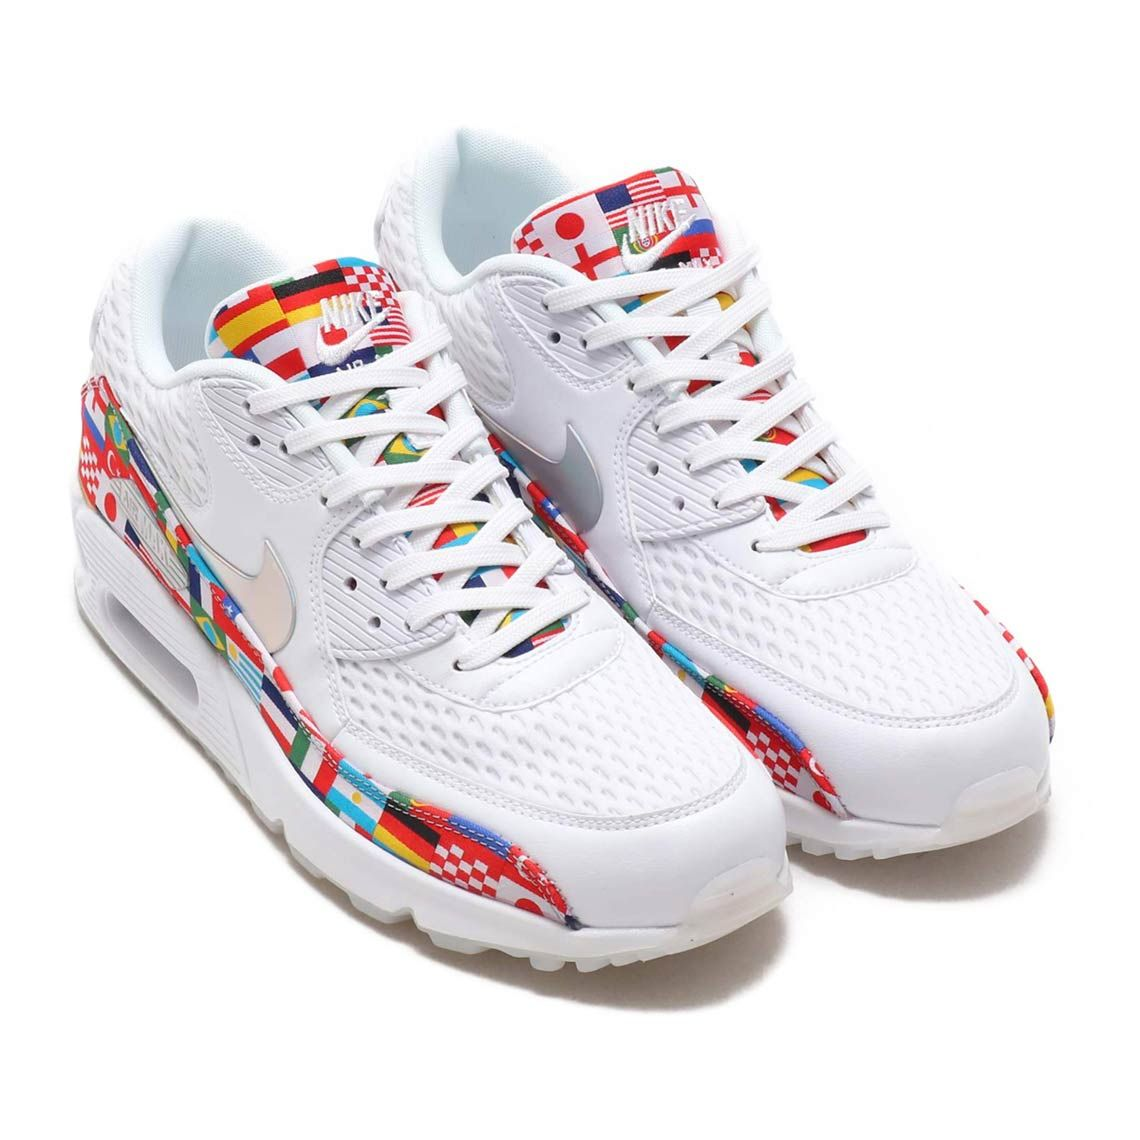 The Nike Air Max 90 EM Goes International With The NIC Pack ... 9cf101009